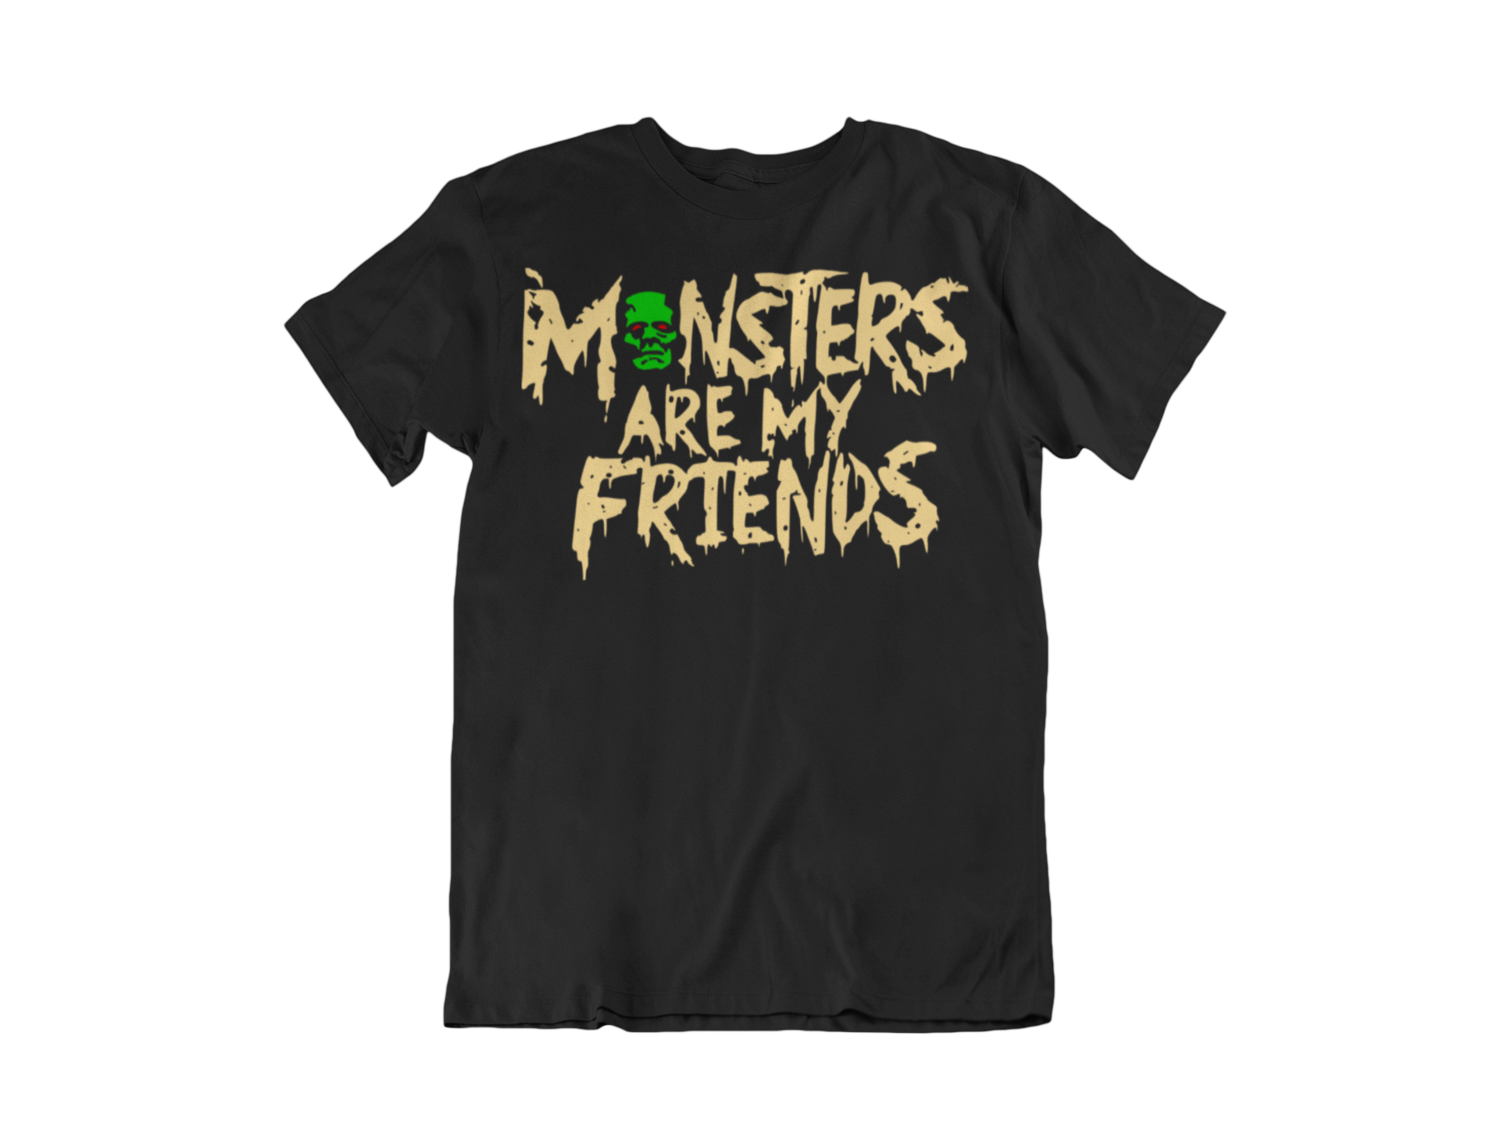 MONSTERS ARE MY FRIENDS T-SHIRT FOR MEN